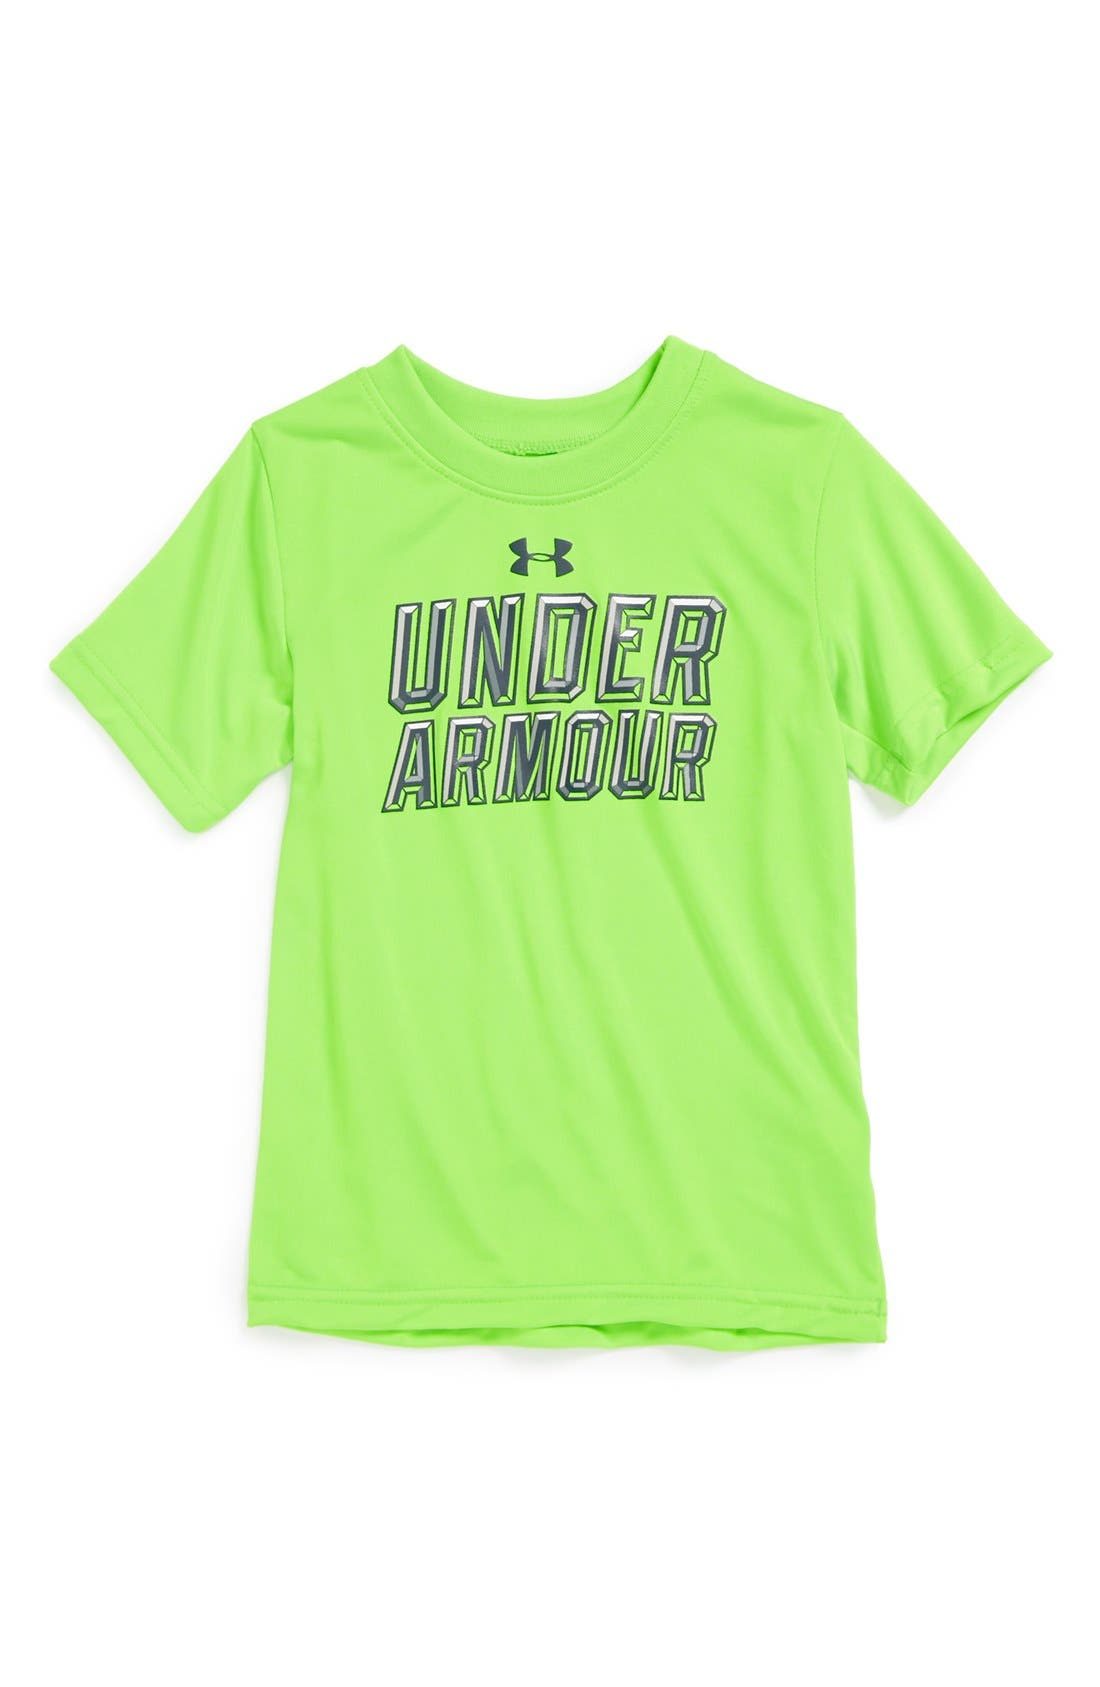 Main Image - Under Armour 'Stained Glass' T-Shirt (Toddler Boys)